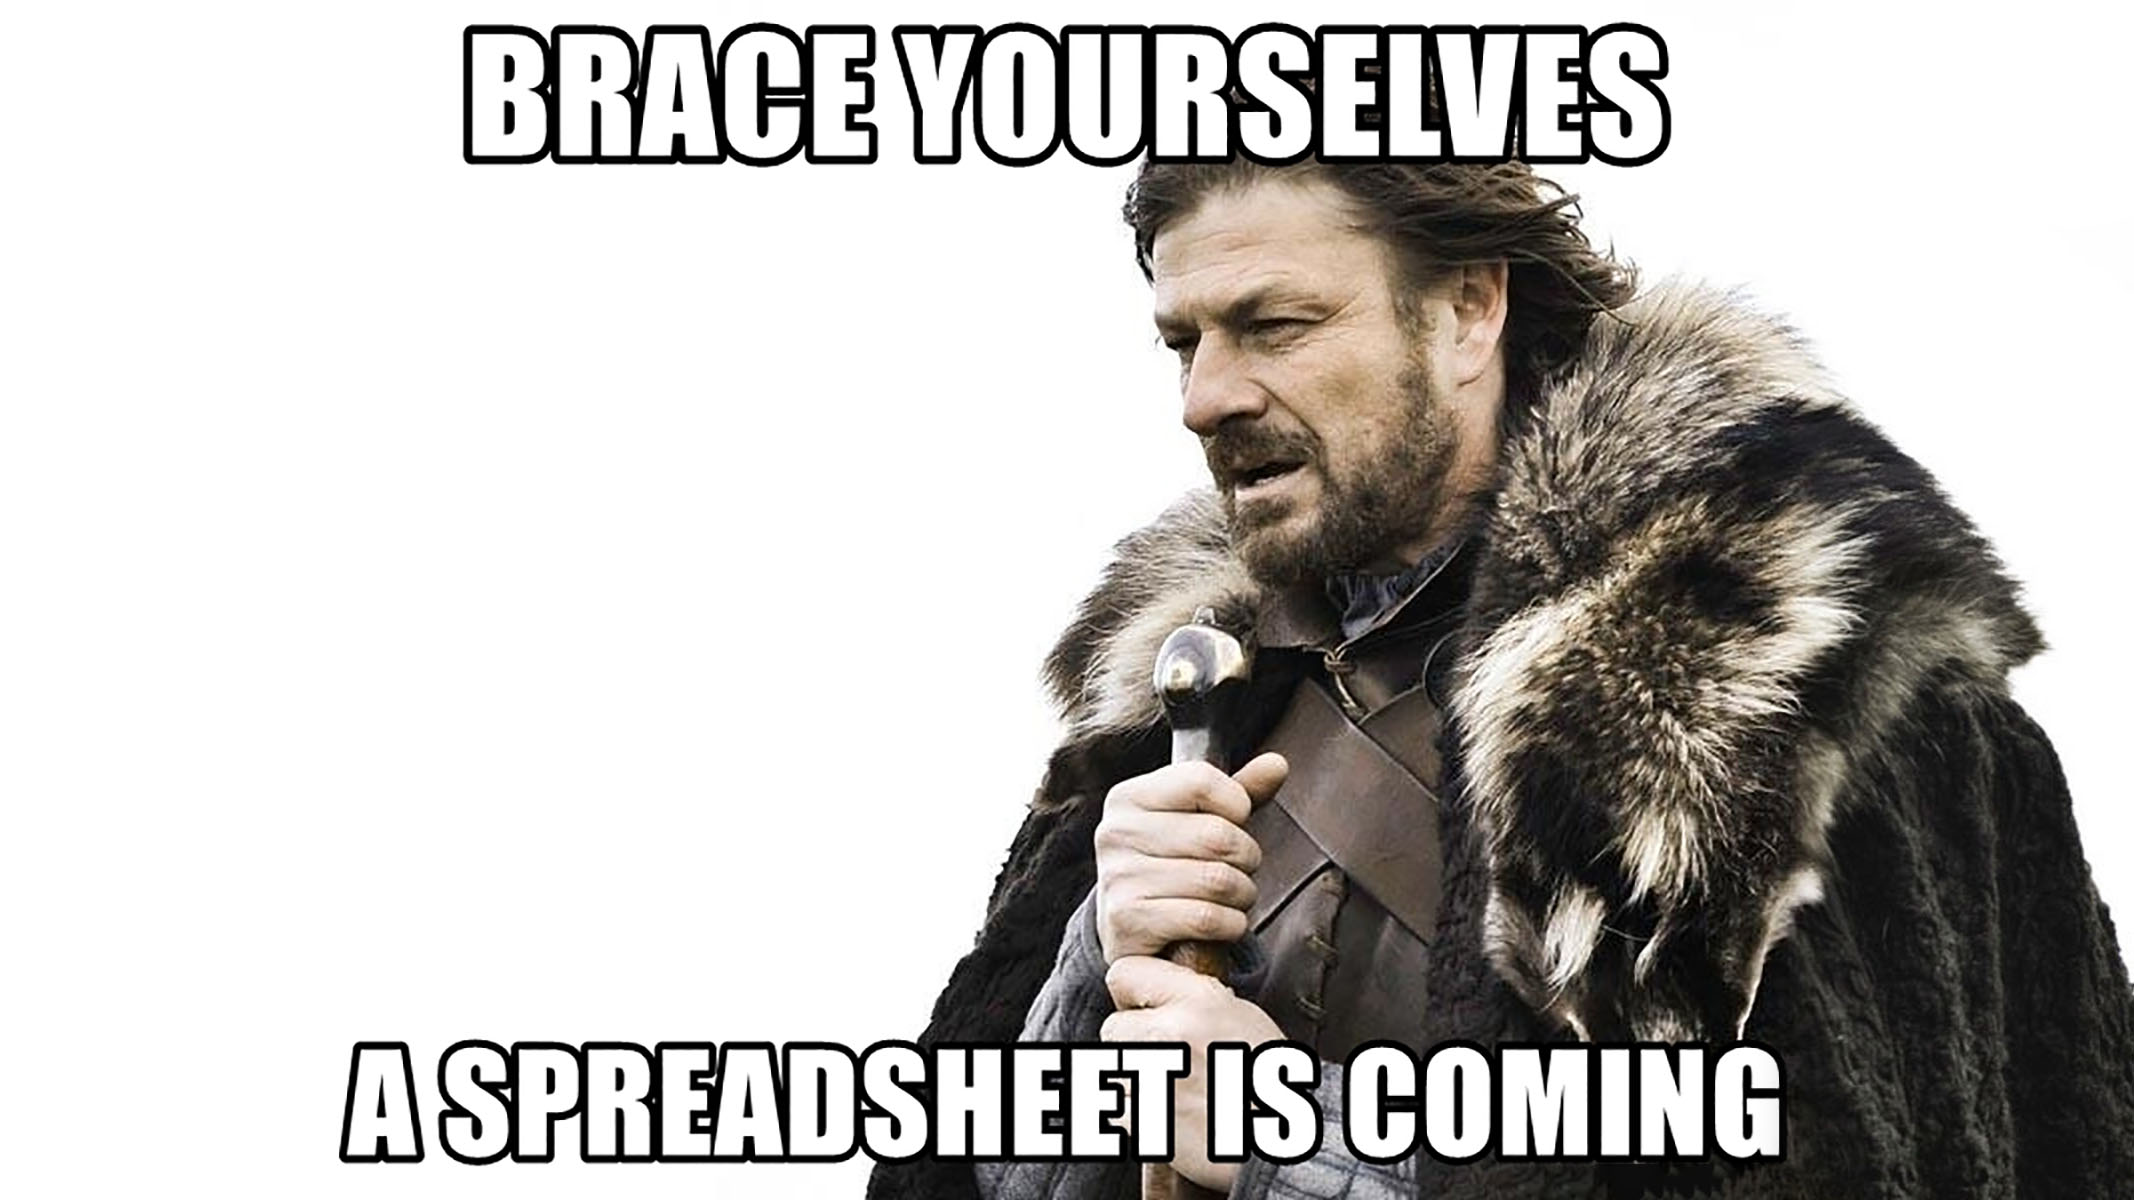 A Sean Bean meme which reads: 'Brace yourself; a spreadsheet is coming'.